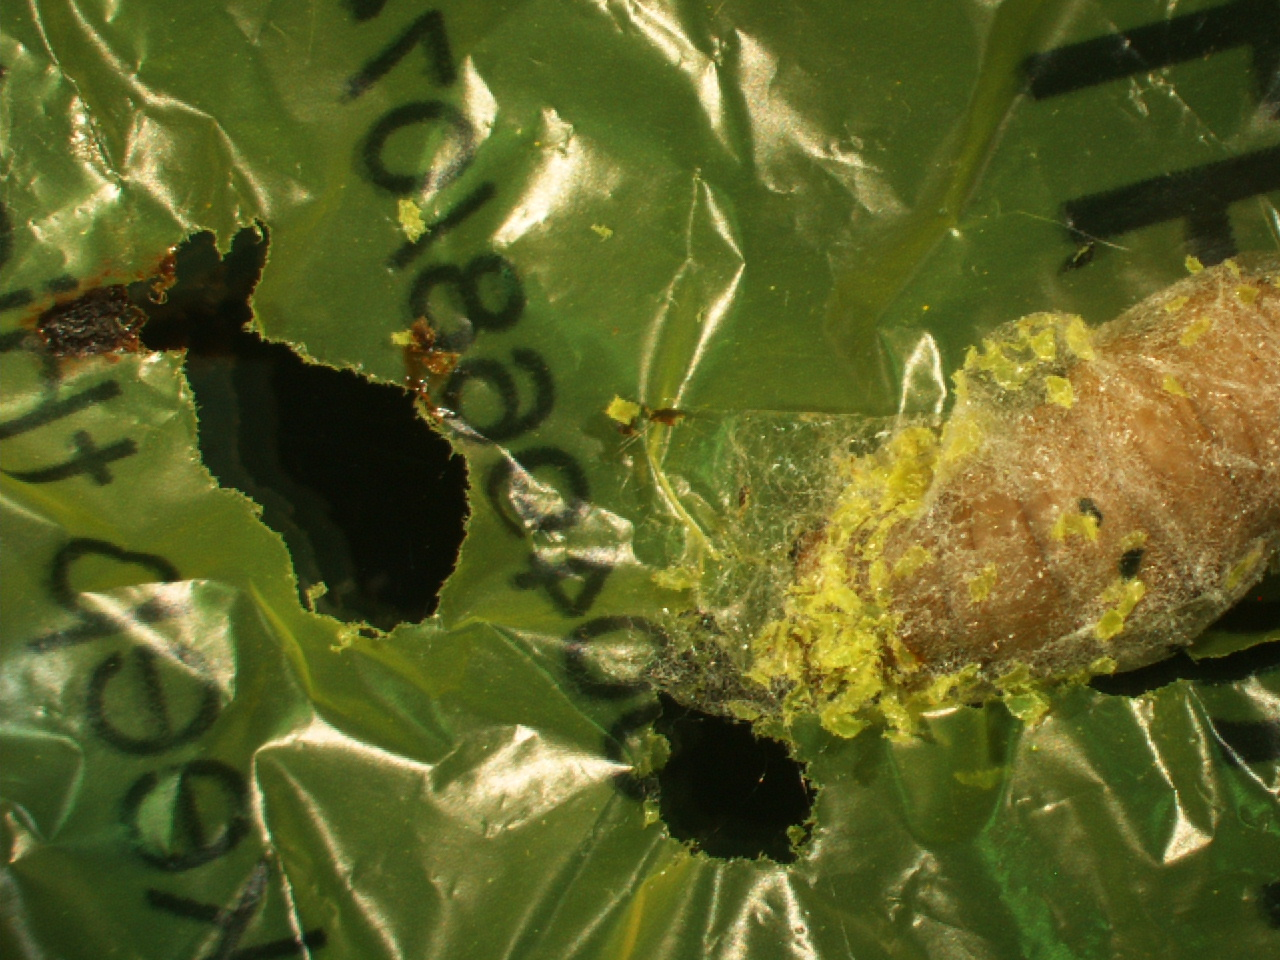 Researchers discover caterpillars that can chew and breakdown plastic